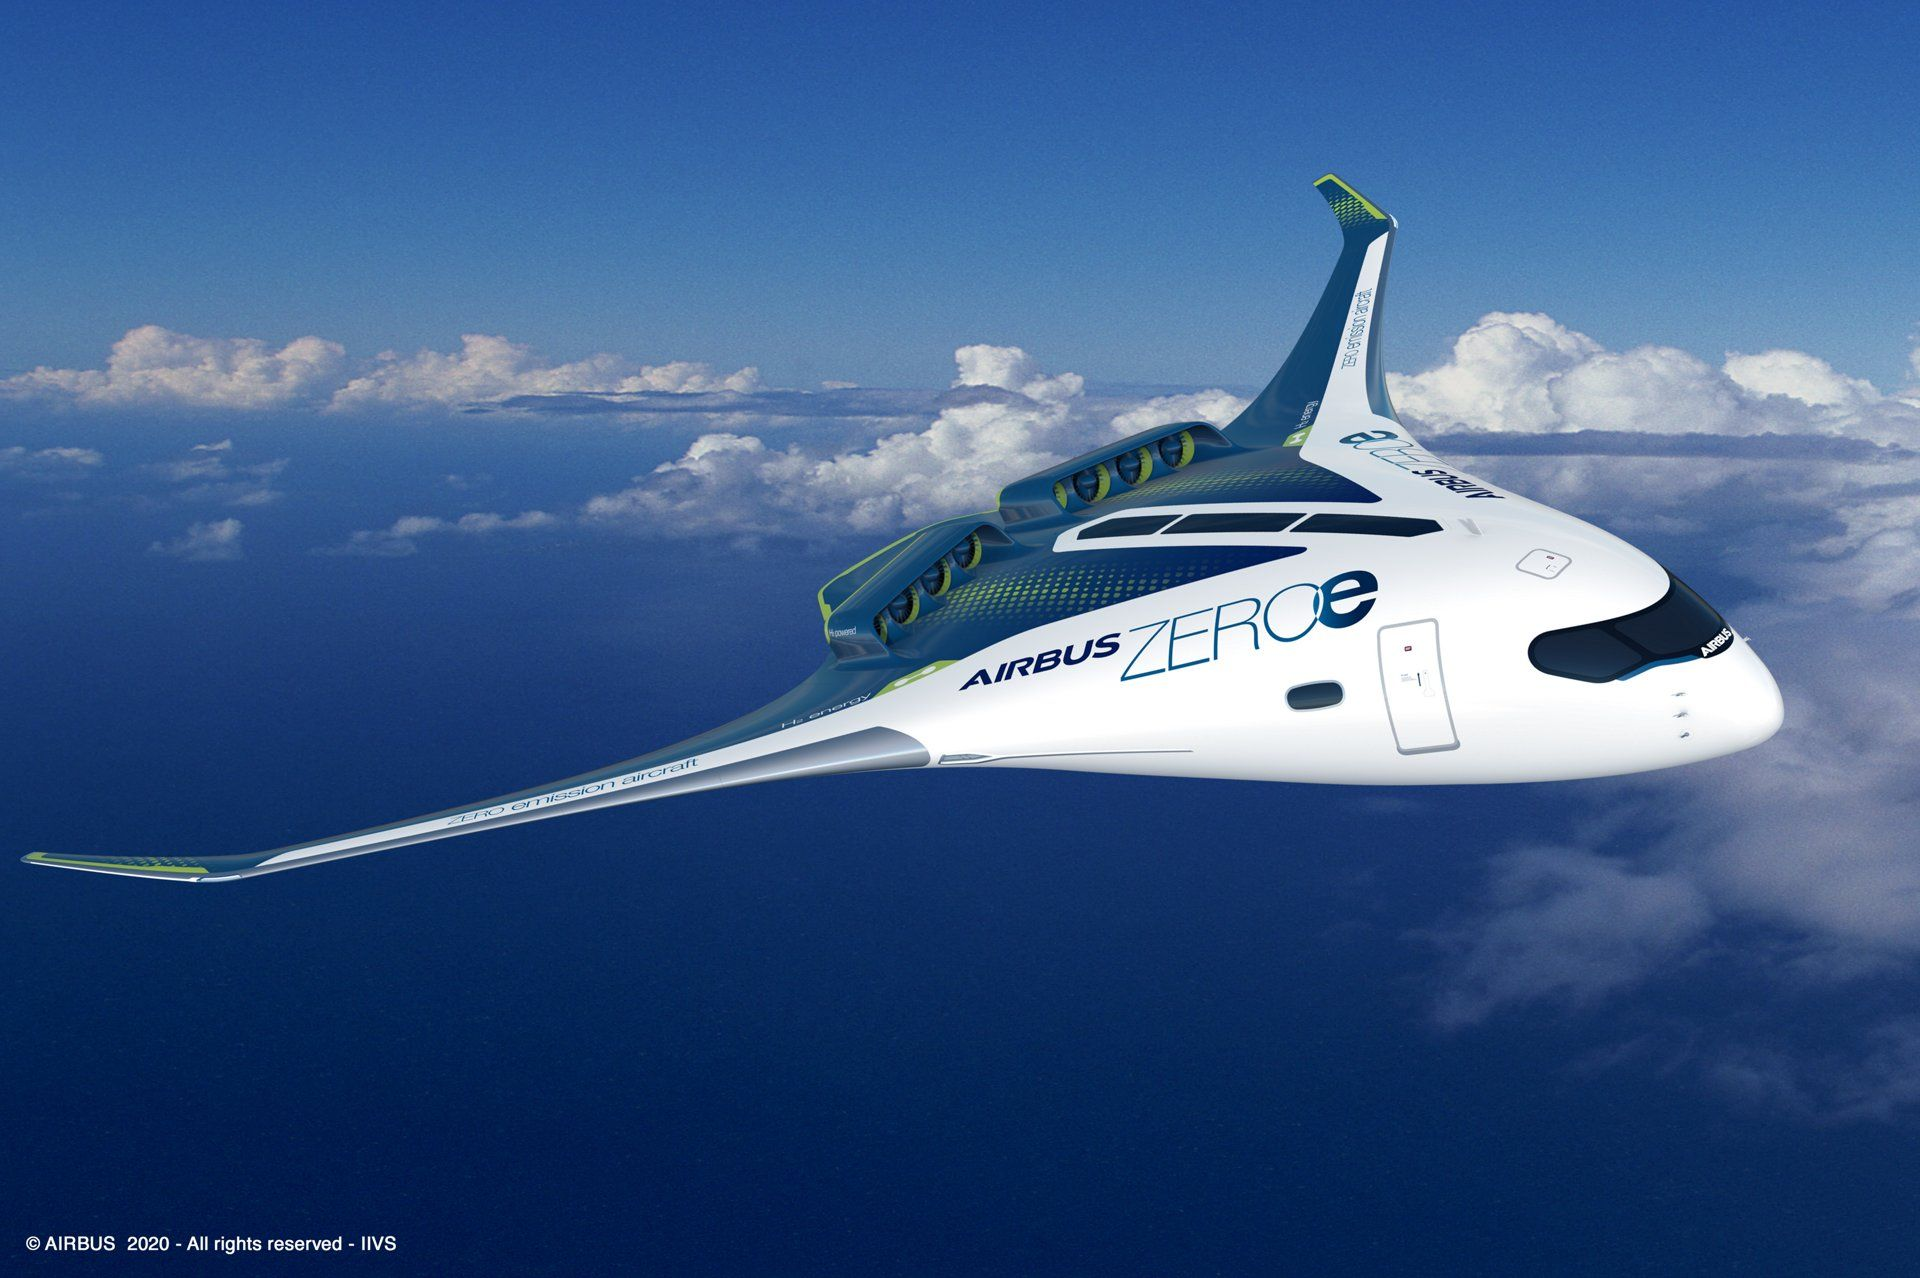 The New Hydrogen-Powered Aircraft from Airbus Is Beautiful. Will It Work?